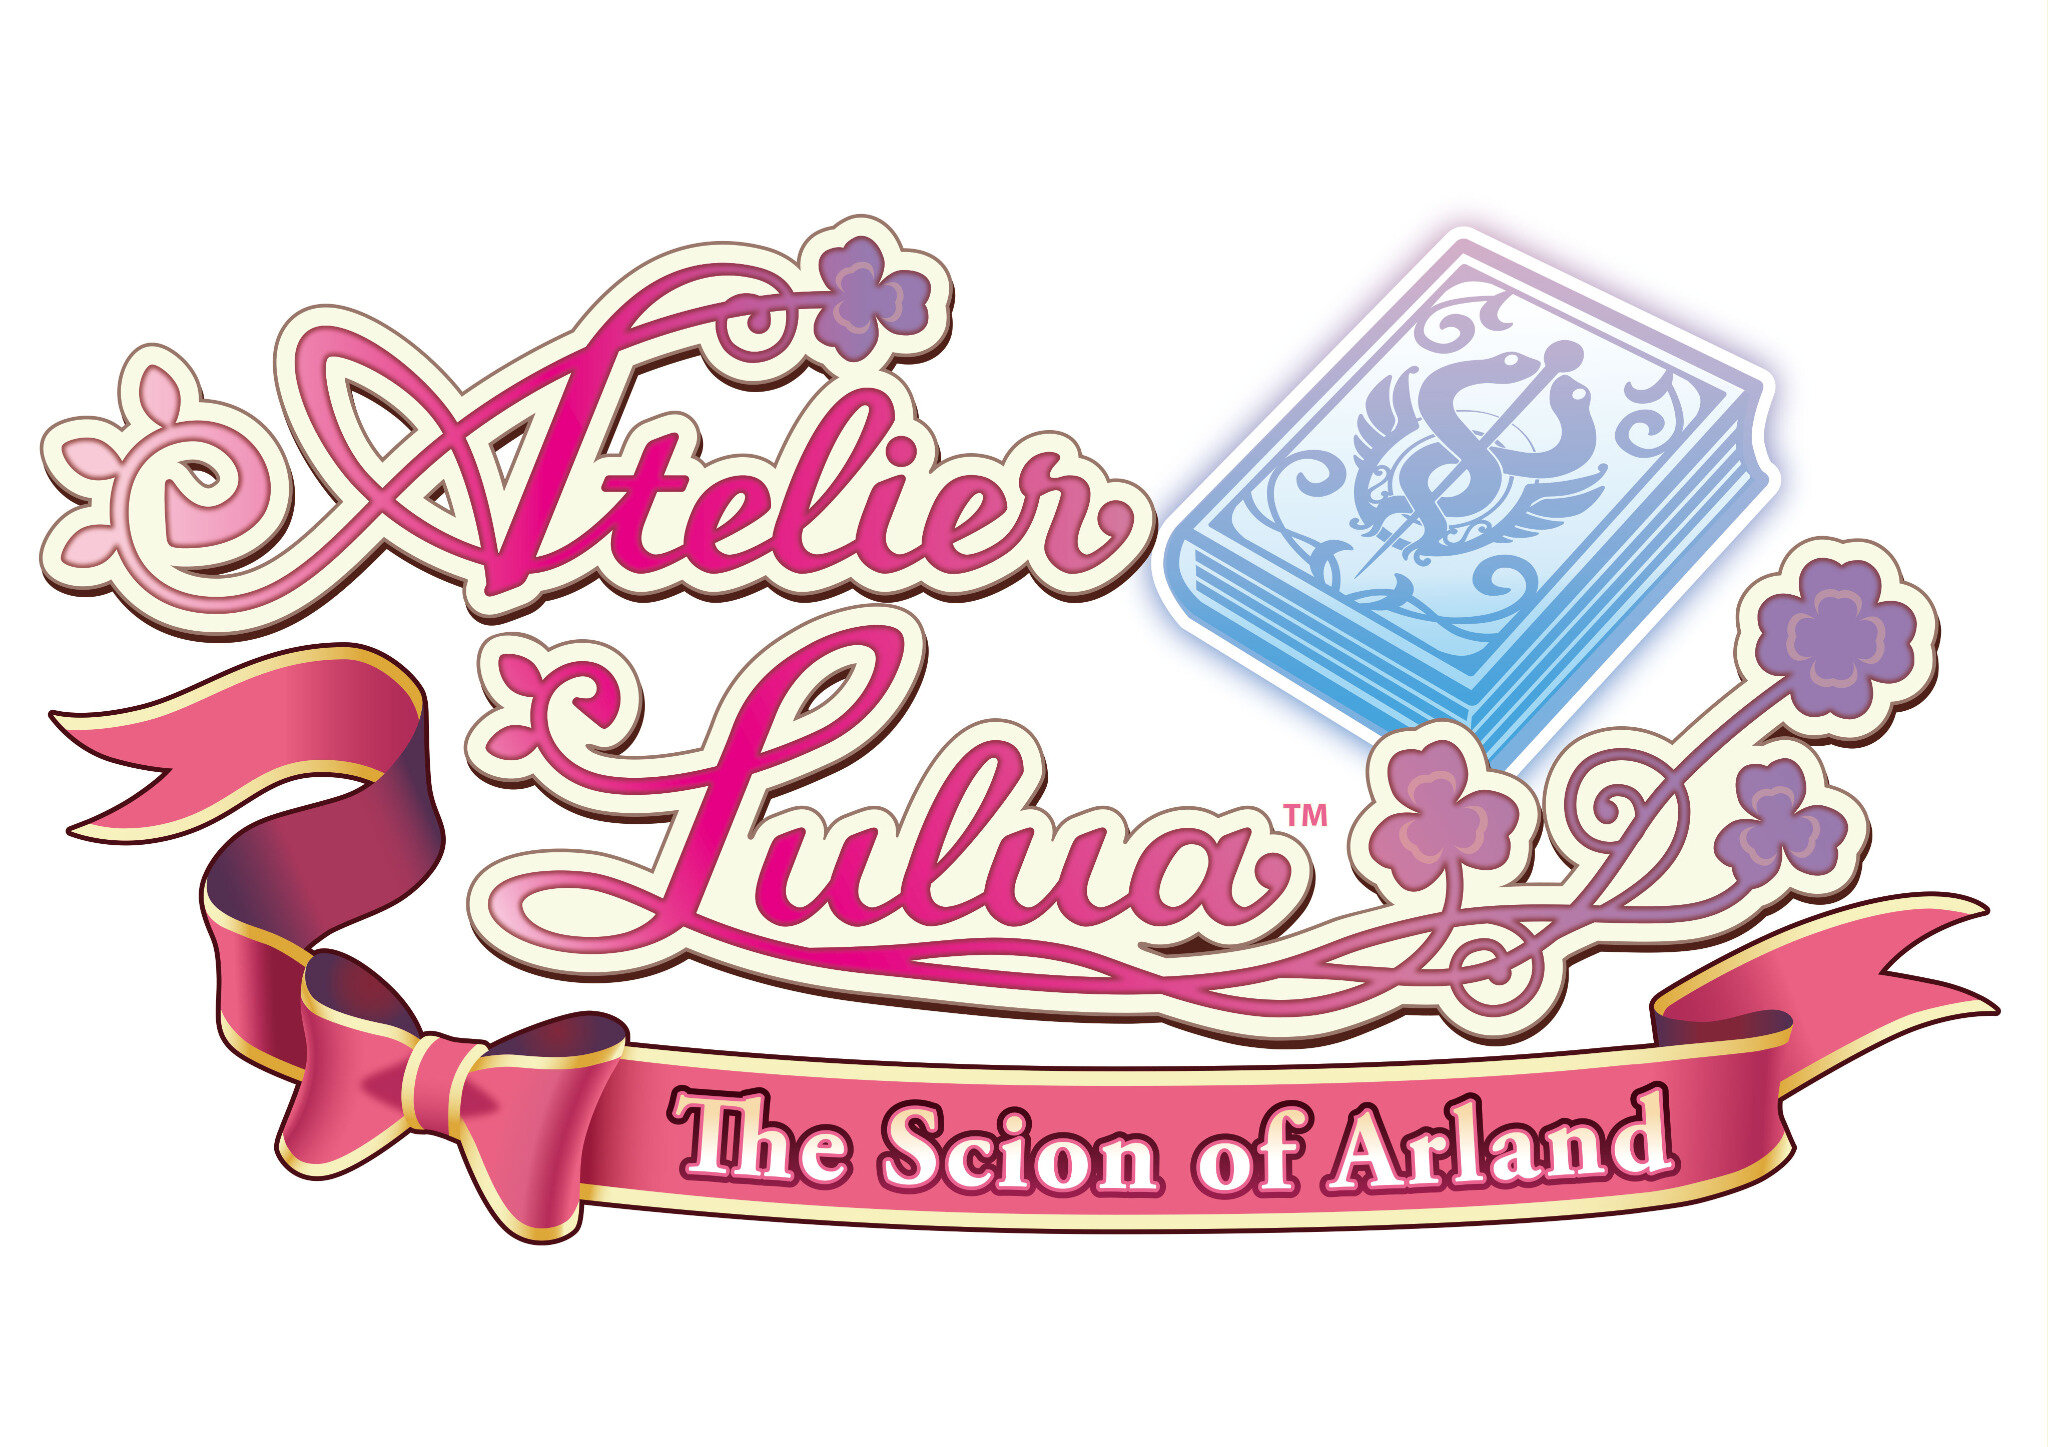 Atelier-Lulua-The-Scion-of-Arland_2018_10-25-18_021